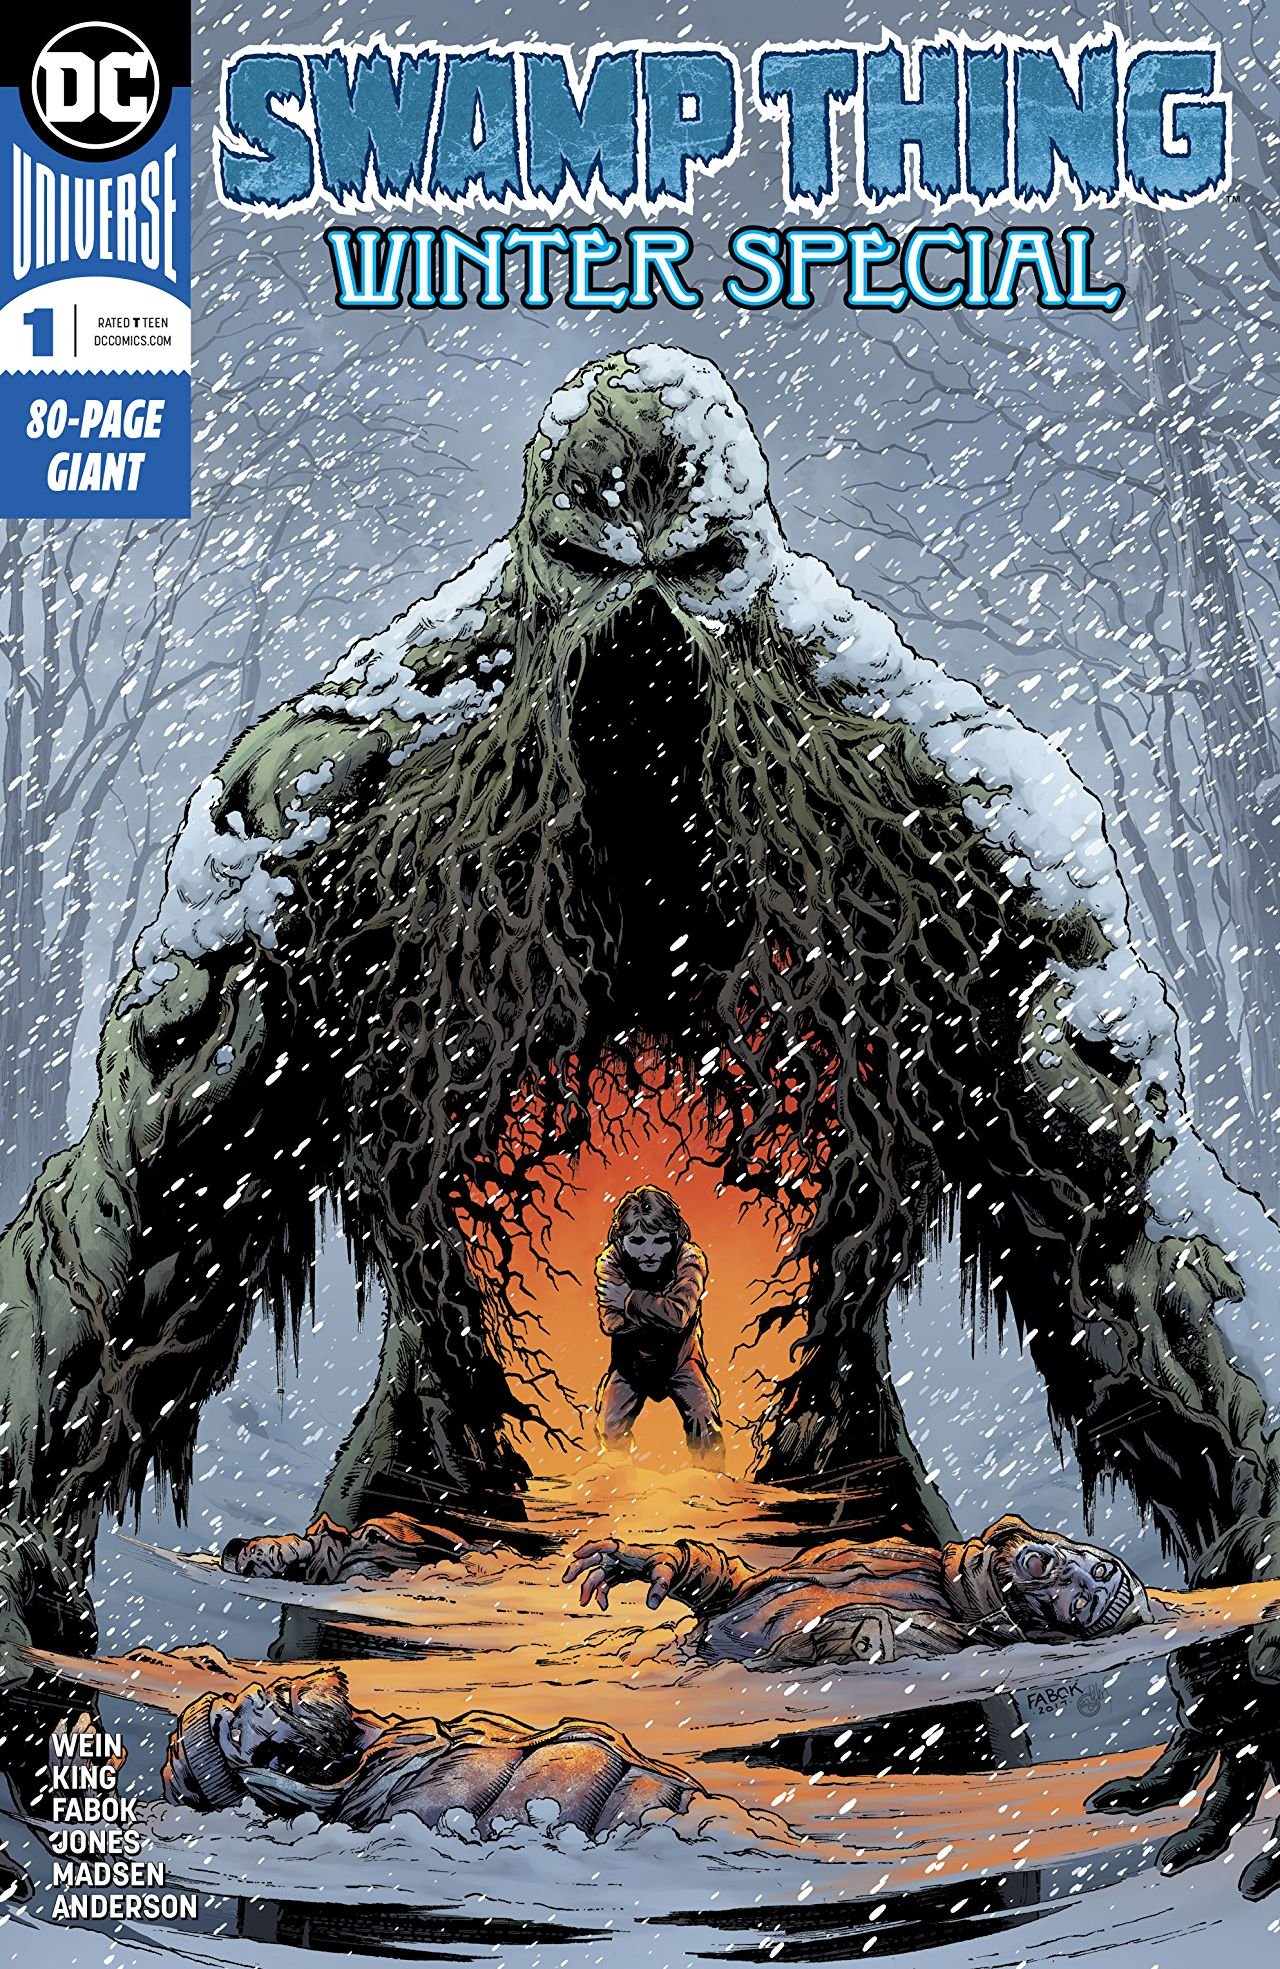 Swamp Thing Winter Special.jpg